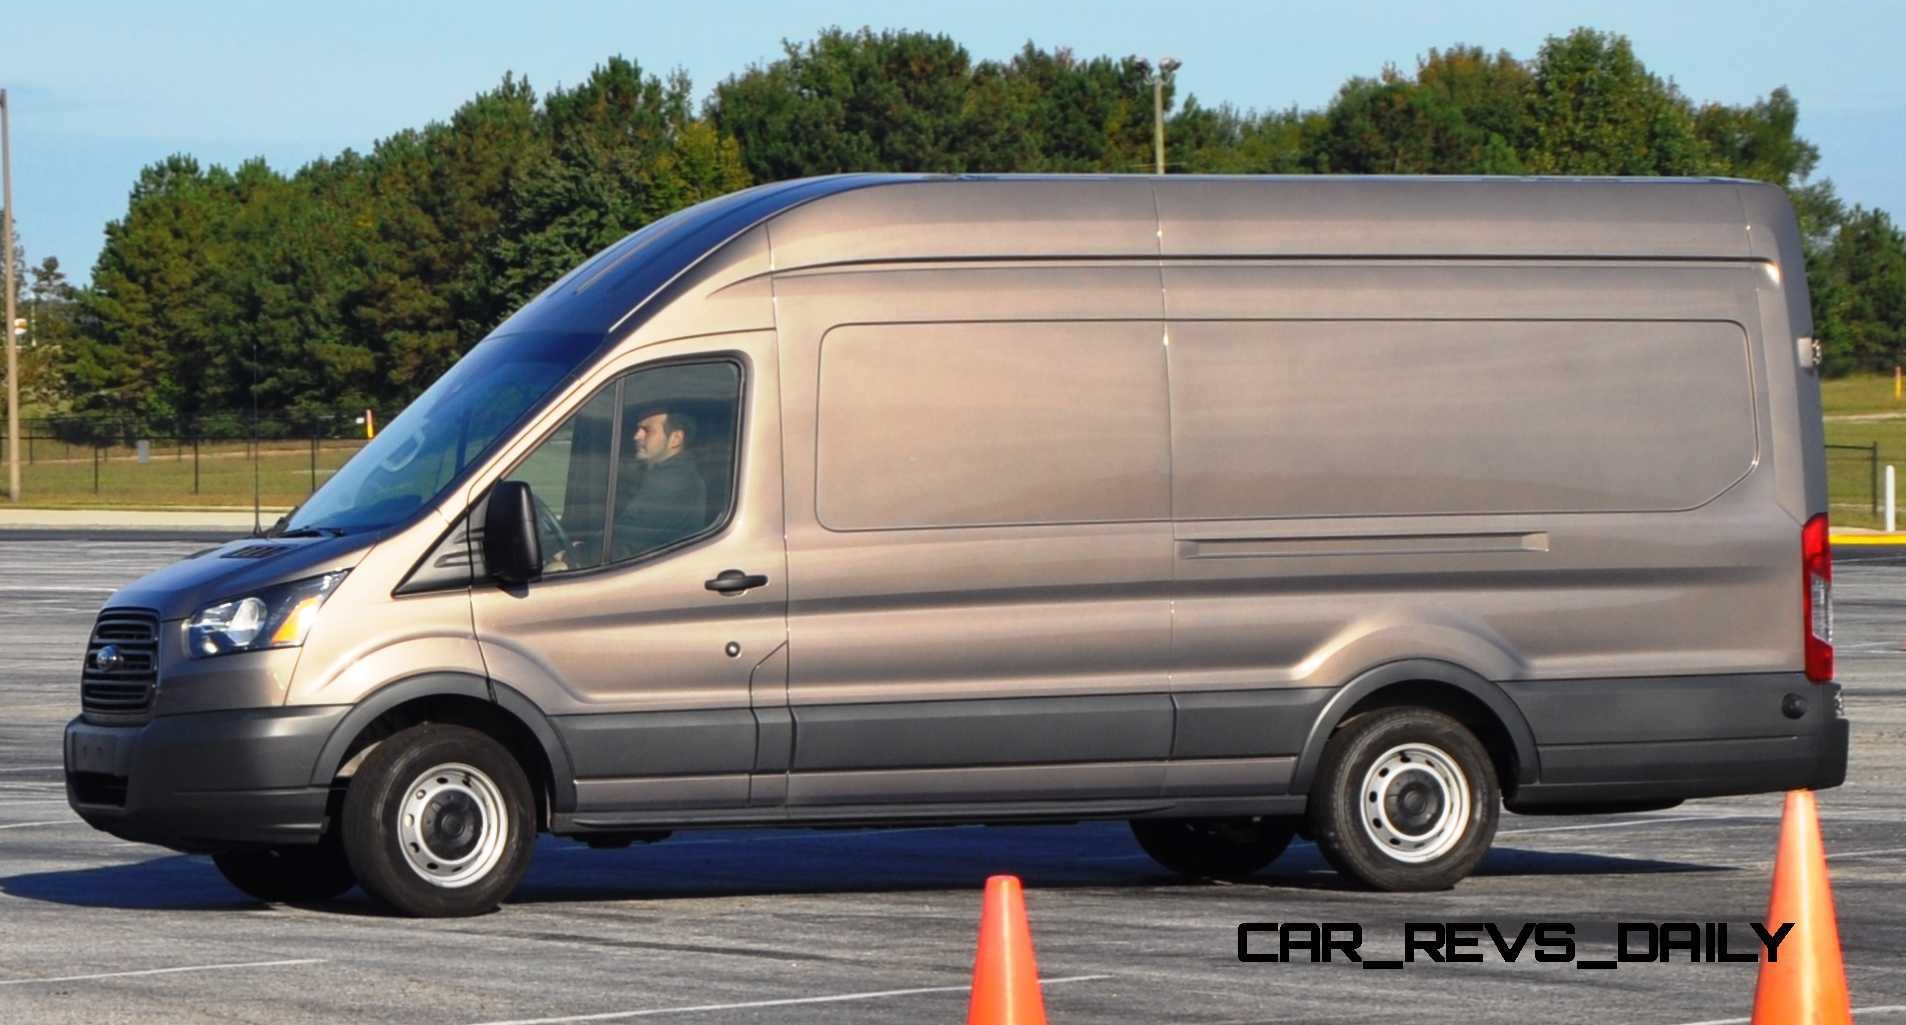 hd track drive review 2015 ford transit powerstroke diesel high roof long box cargo van 16. Black Bedroom Furniture Sets. Home Design Ideas